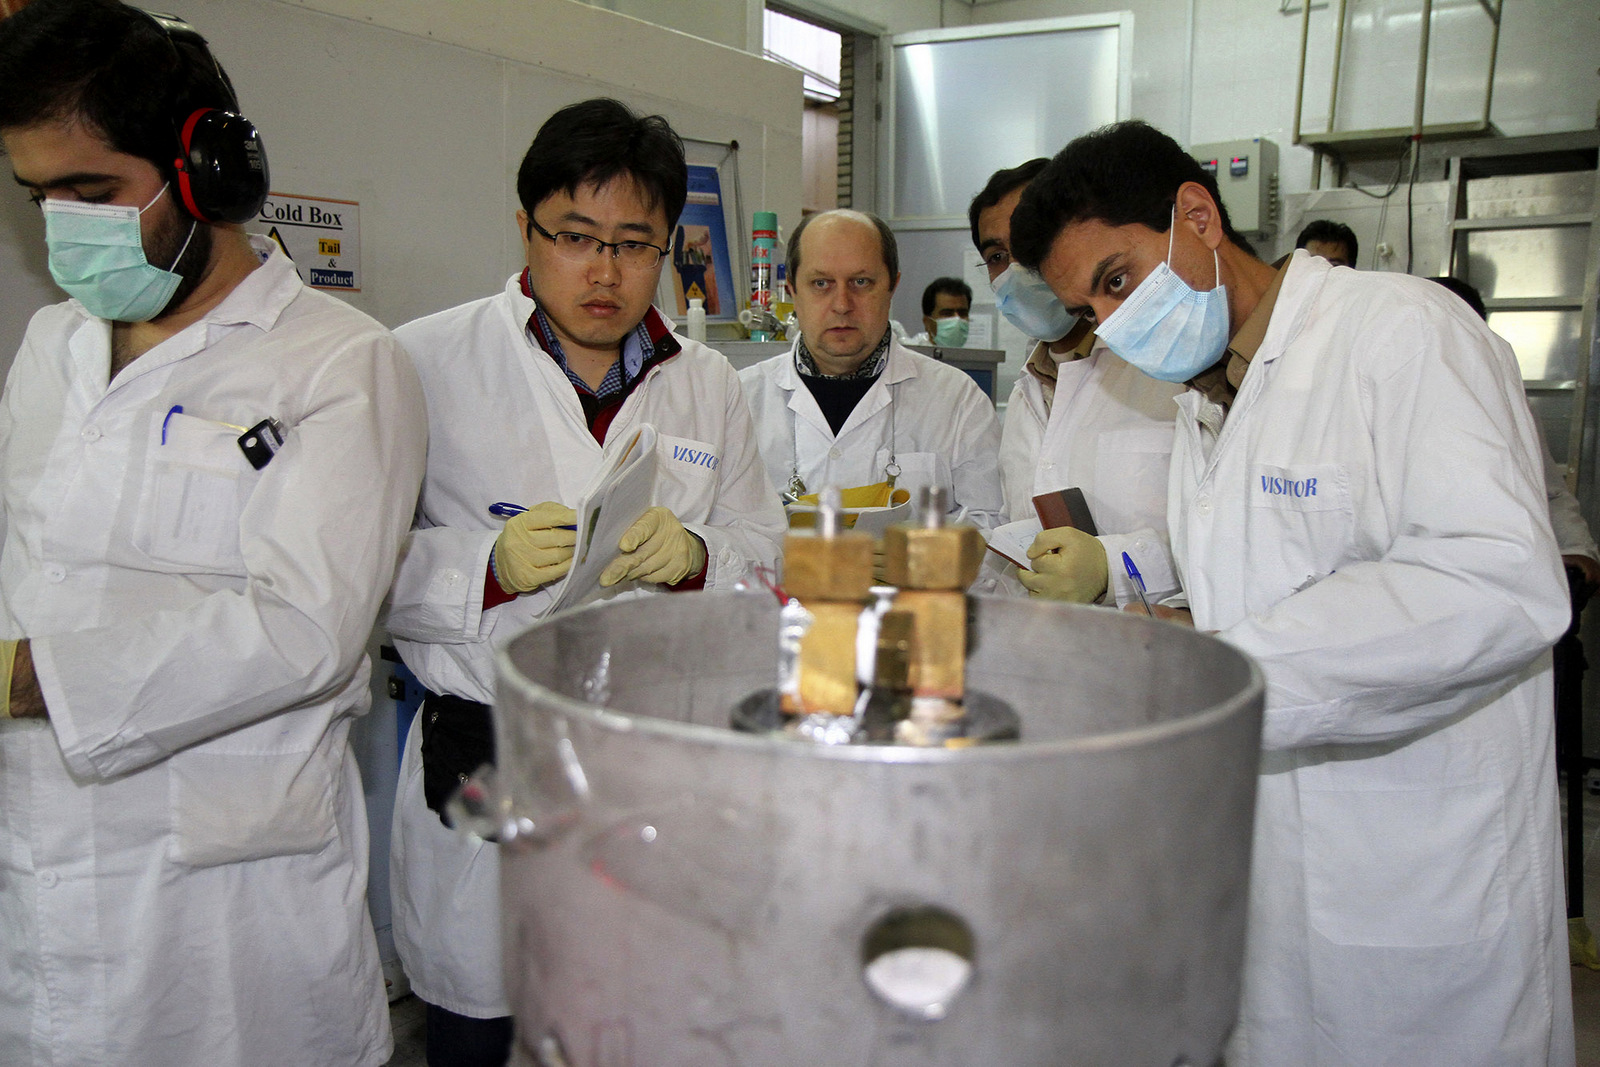 Unidentified International Atomic Energy Agency (IAEA) inspectors and Iranian technicians are on hand to cut the connections between the twin cascades for 20 percent uranium enrichment at Natanz facility, some 200 miles (322 kilometers) south of the capital Tehran, Iran, Monday, Jan. 20, 2014. Iran has halted its most sensitive uranium enrichment work as part of a landmark deal struck with world powers, state TV said Monday. The broadcast said Iran halted its 20 percent uranium enrichment, which is just steps away from bomb-making materials, by cutting the link feeding cascades enriching uranium in Natanz. (AP Photo/IRNA, Kazem Ghane)